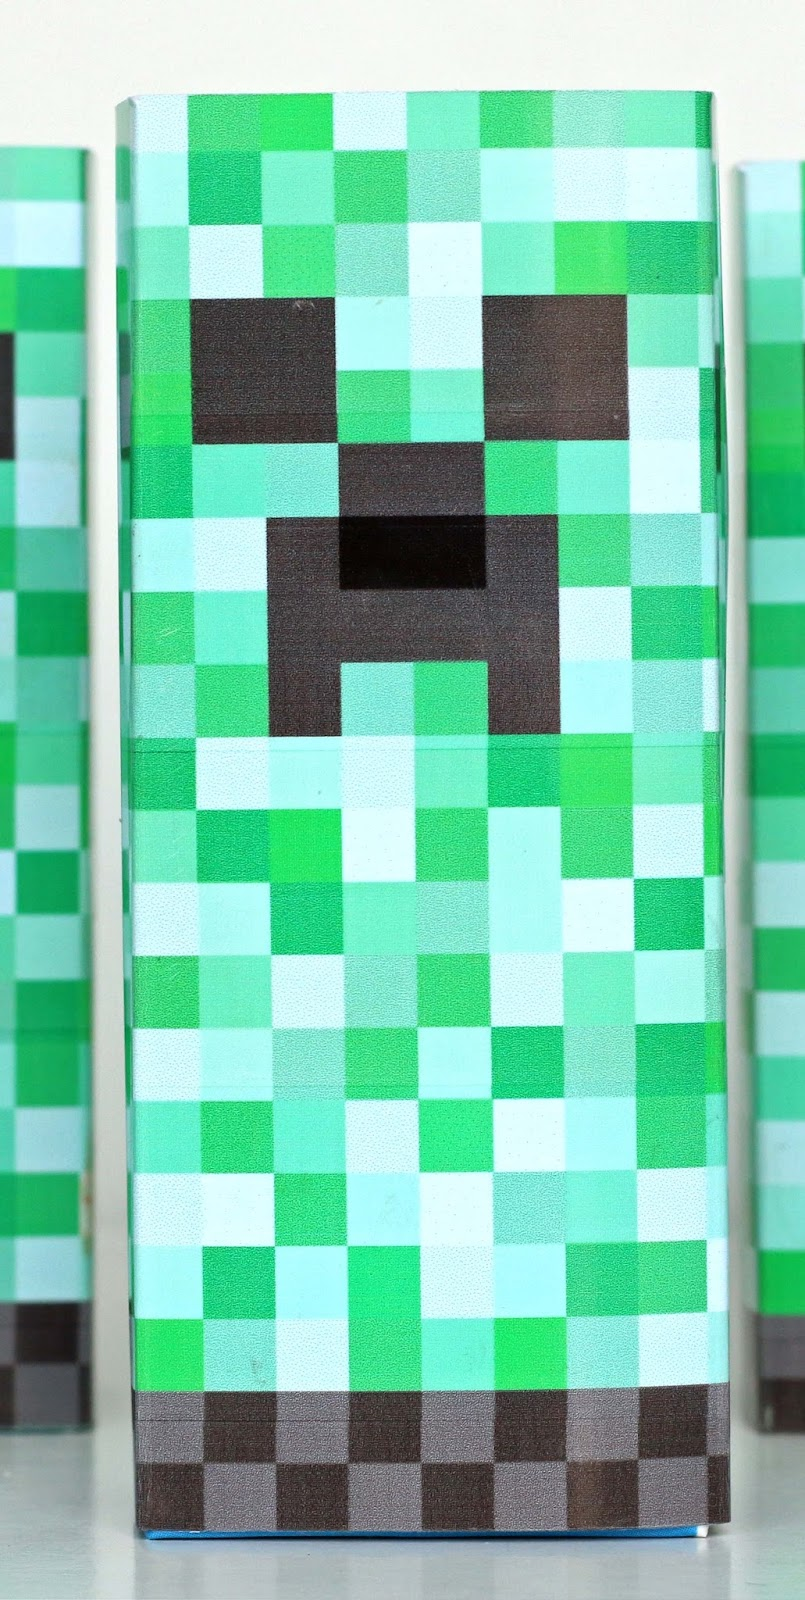 It's just an image of Adorable Minecraft Creeper Face Printable